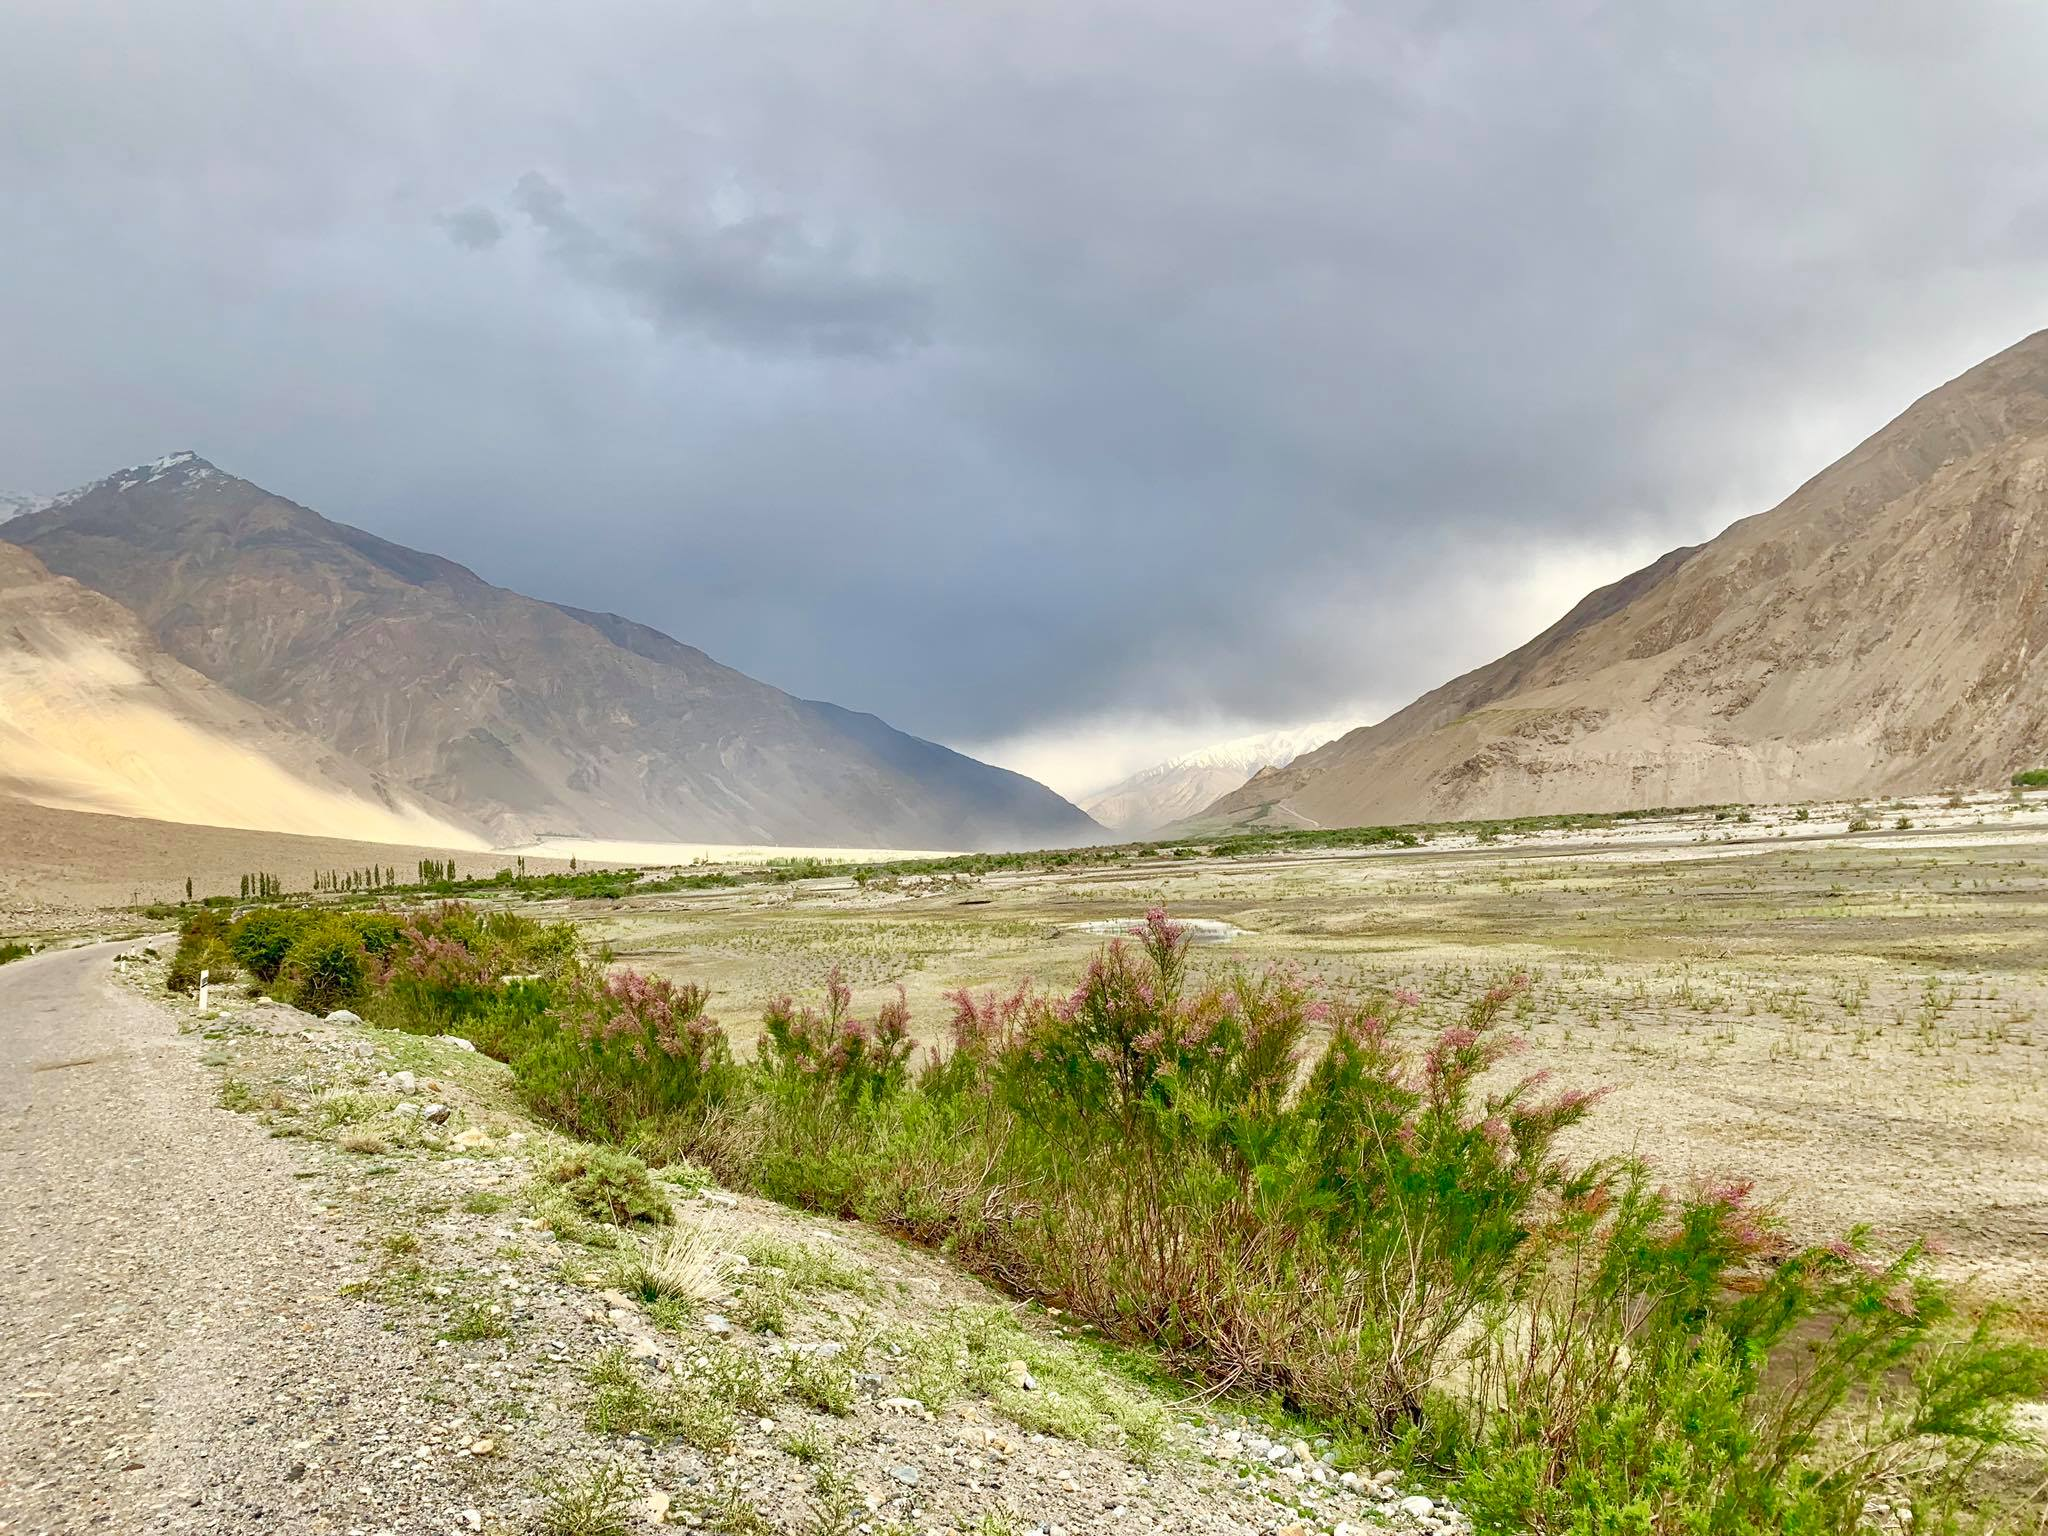 Kach Solo Travels in 2019 Driving from Ishkashim to Wakhan Valley18.jpg